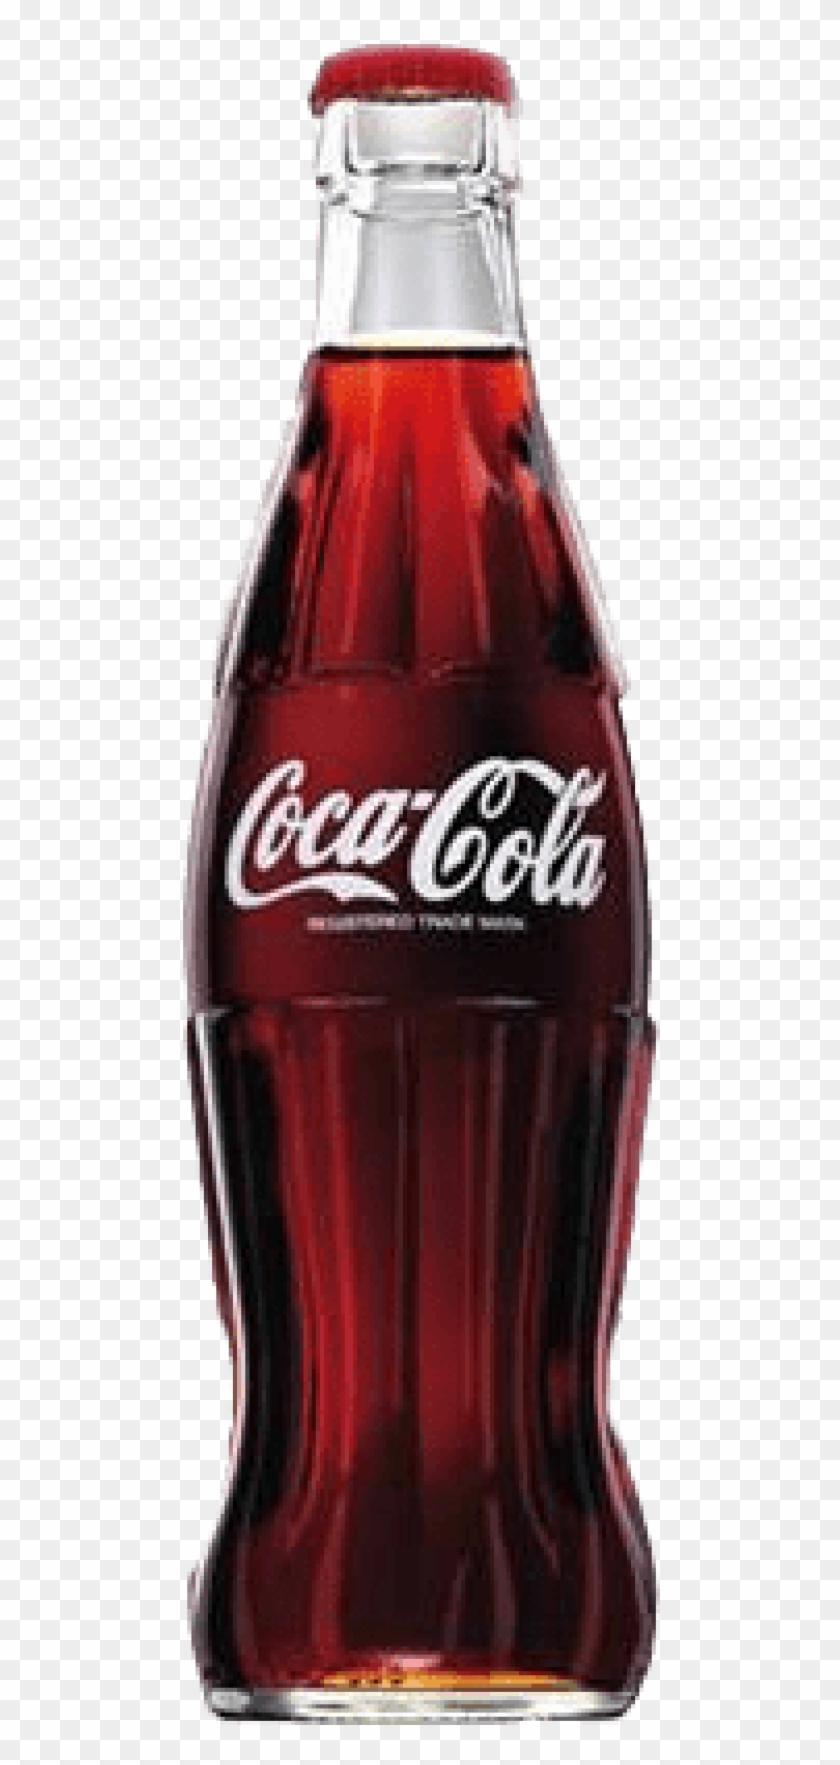 Free Png Download Coca Cola Bottle Body Shape Png Images.